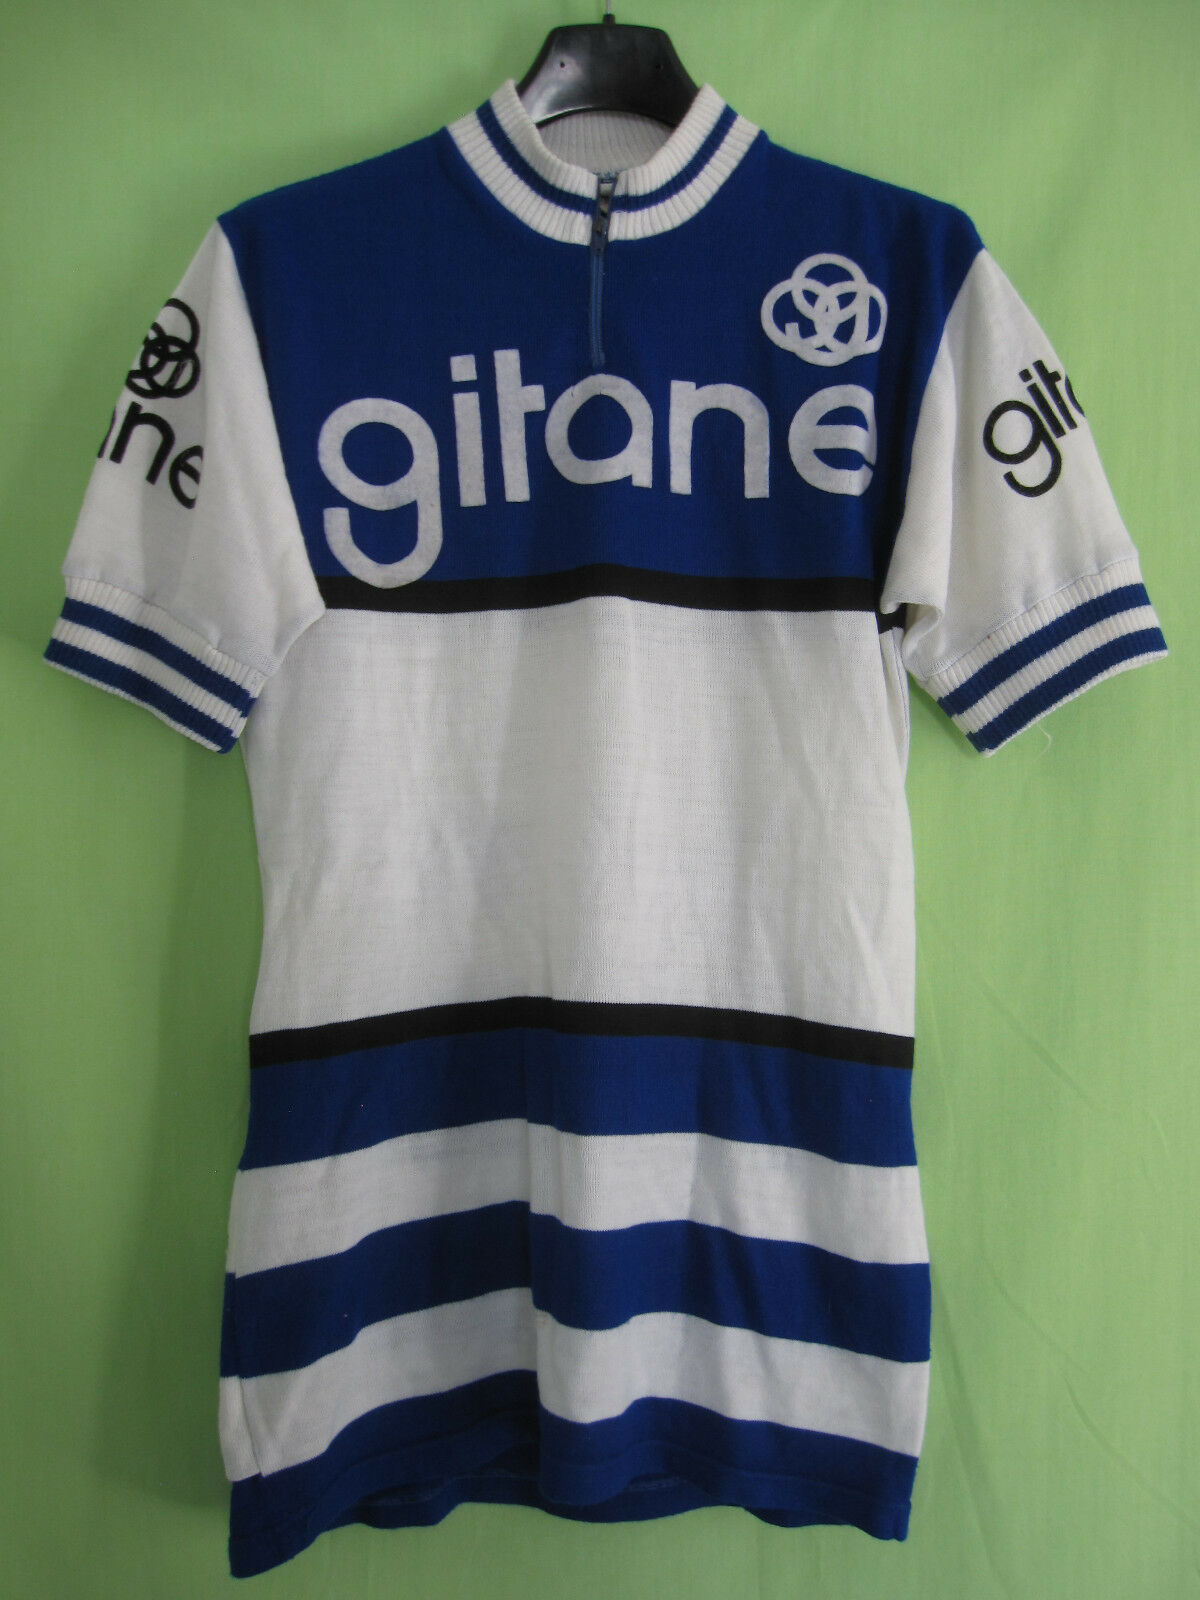 Maillot Cycliste vintage GITANE Cycles Acrylique Laine 70'S jersey Tricodor - M